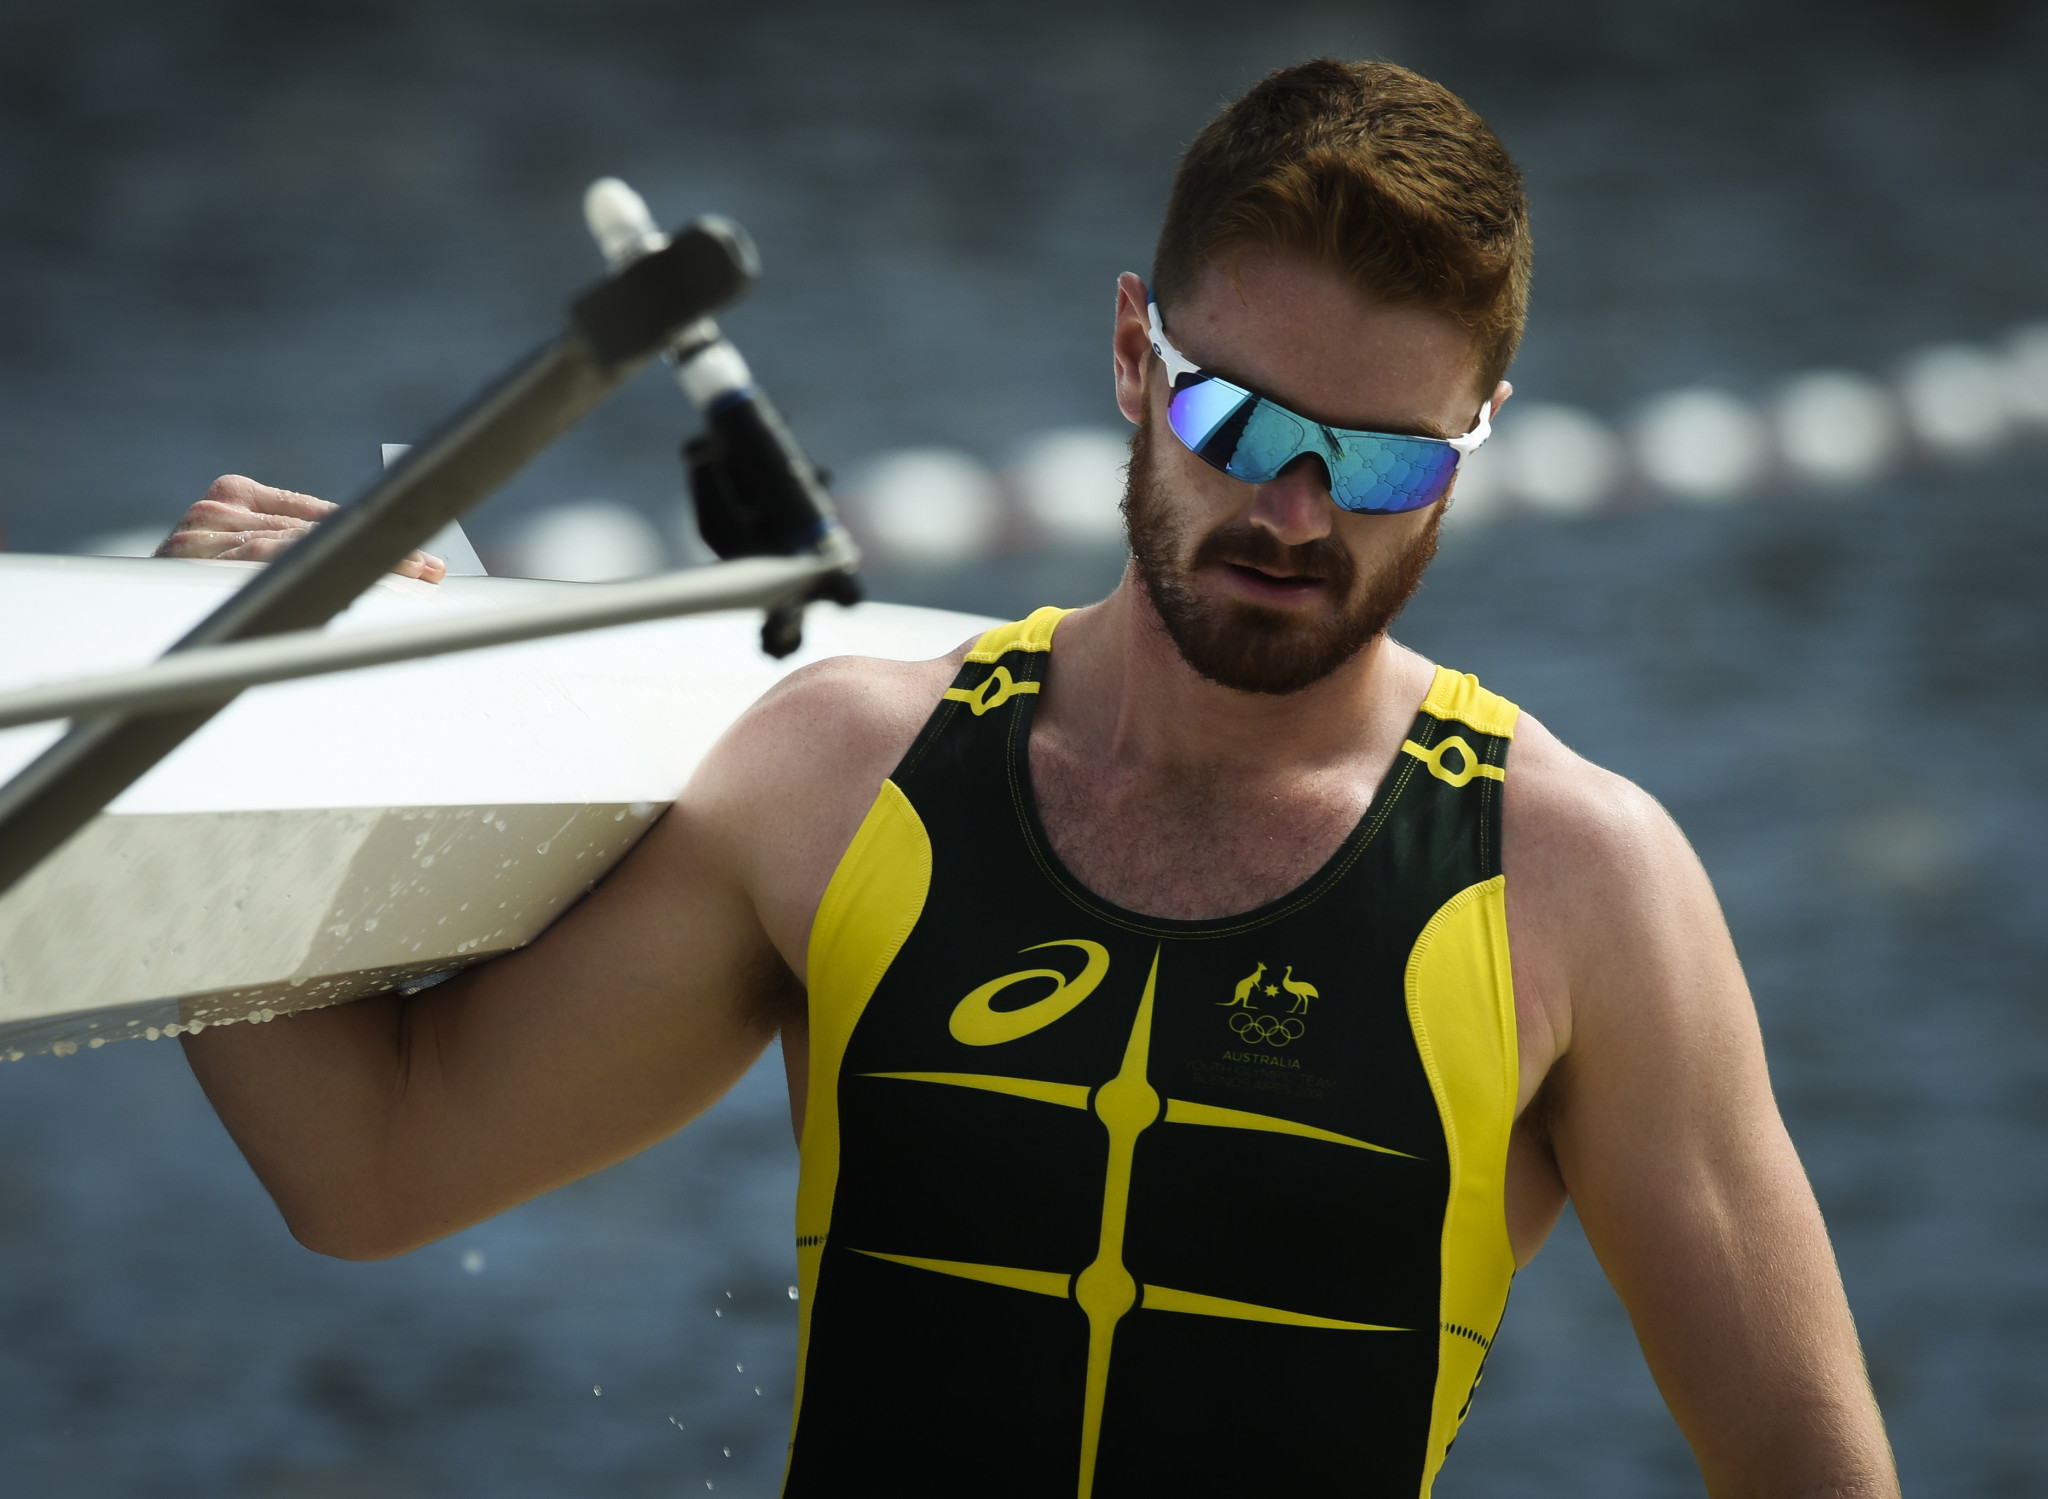 Youth Olympic medallist Cormac Kennedy-Leverett will go in the men's single sculls ©Getty Images